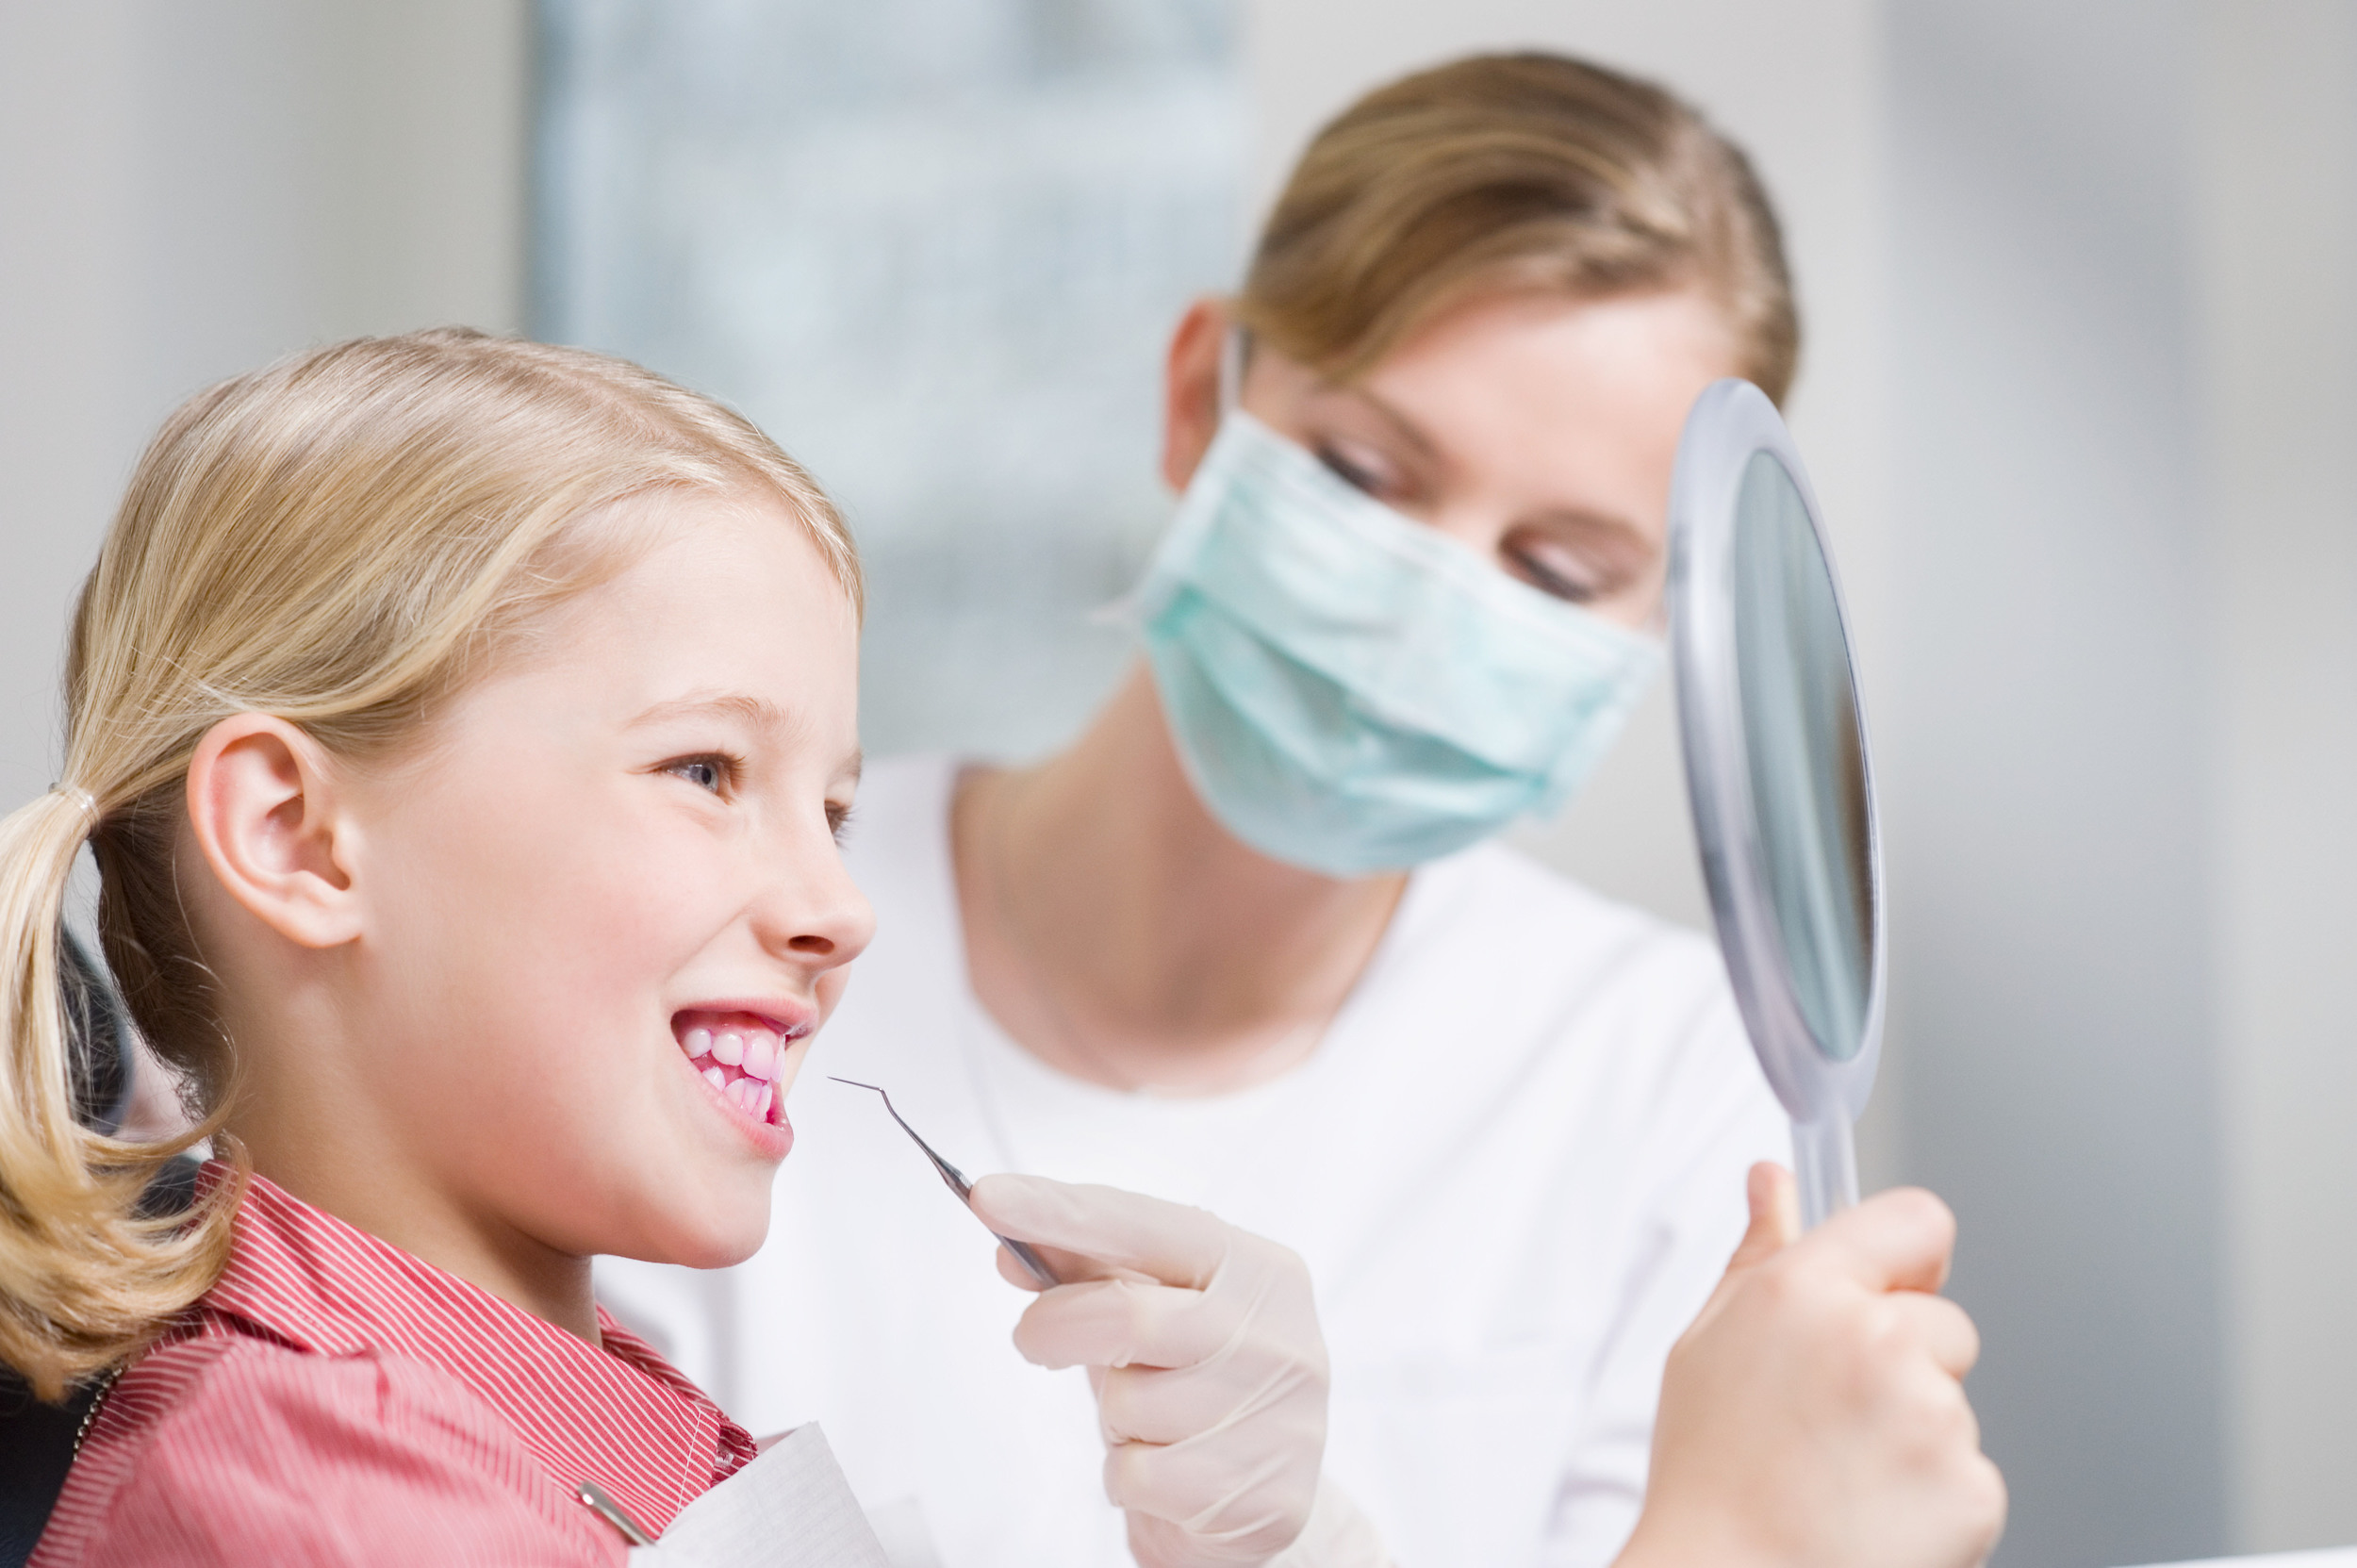 A career in dentistry is a good choice